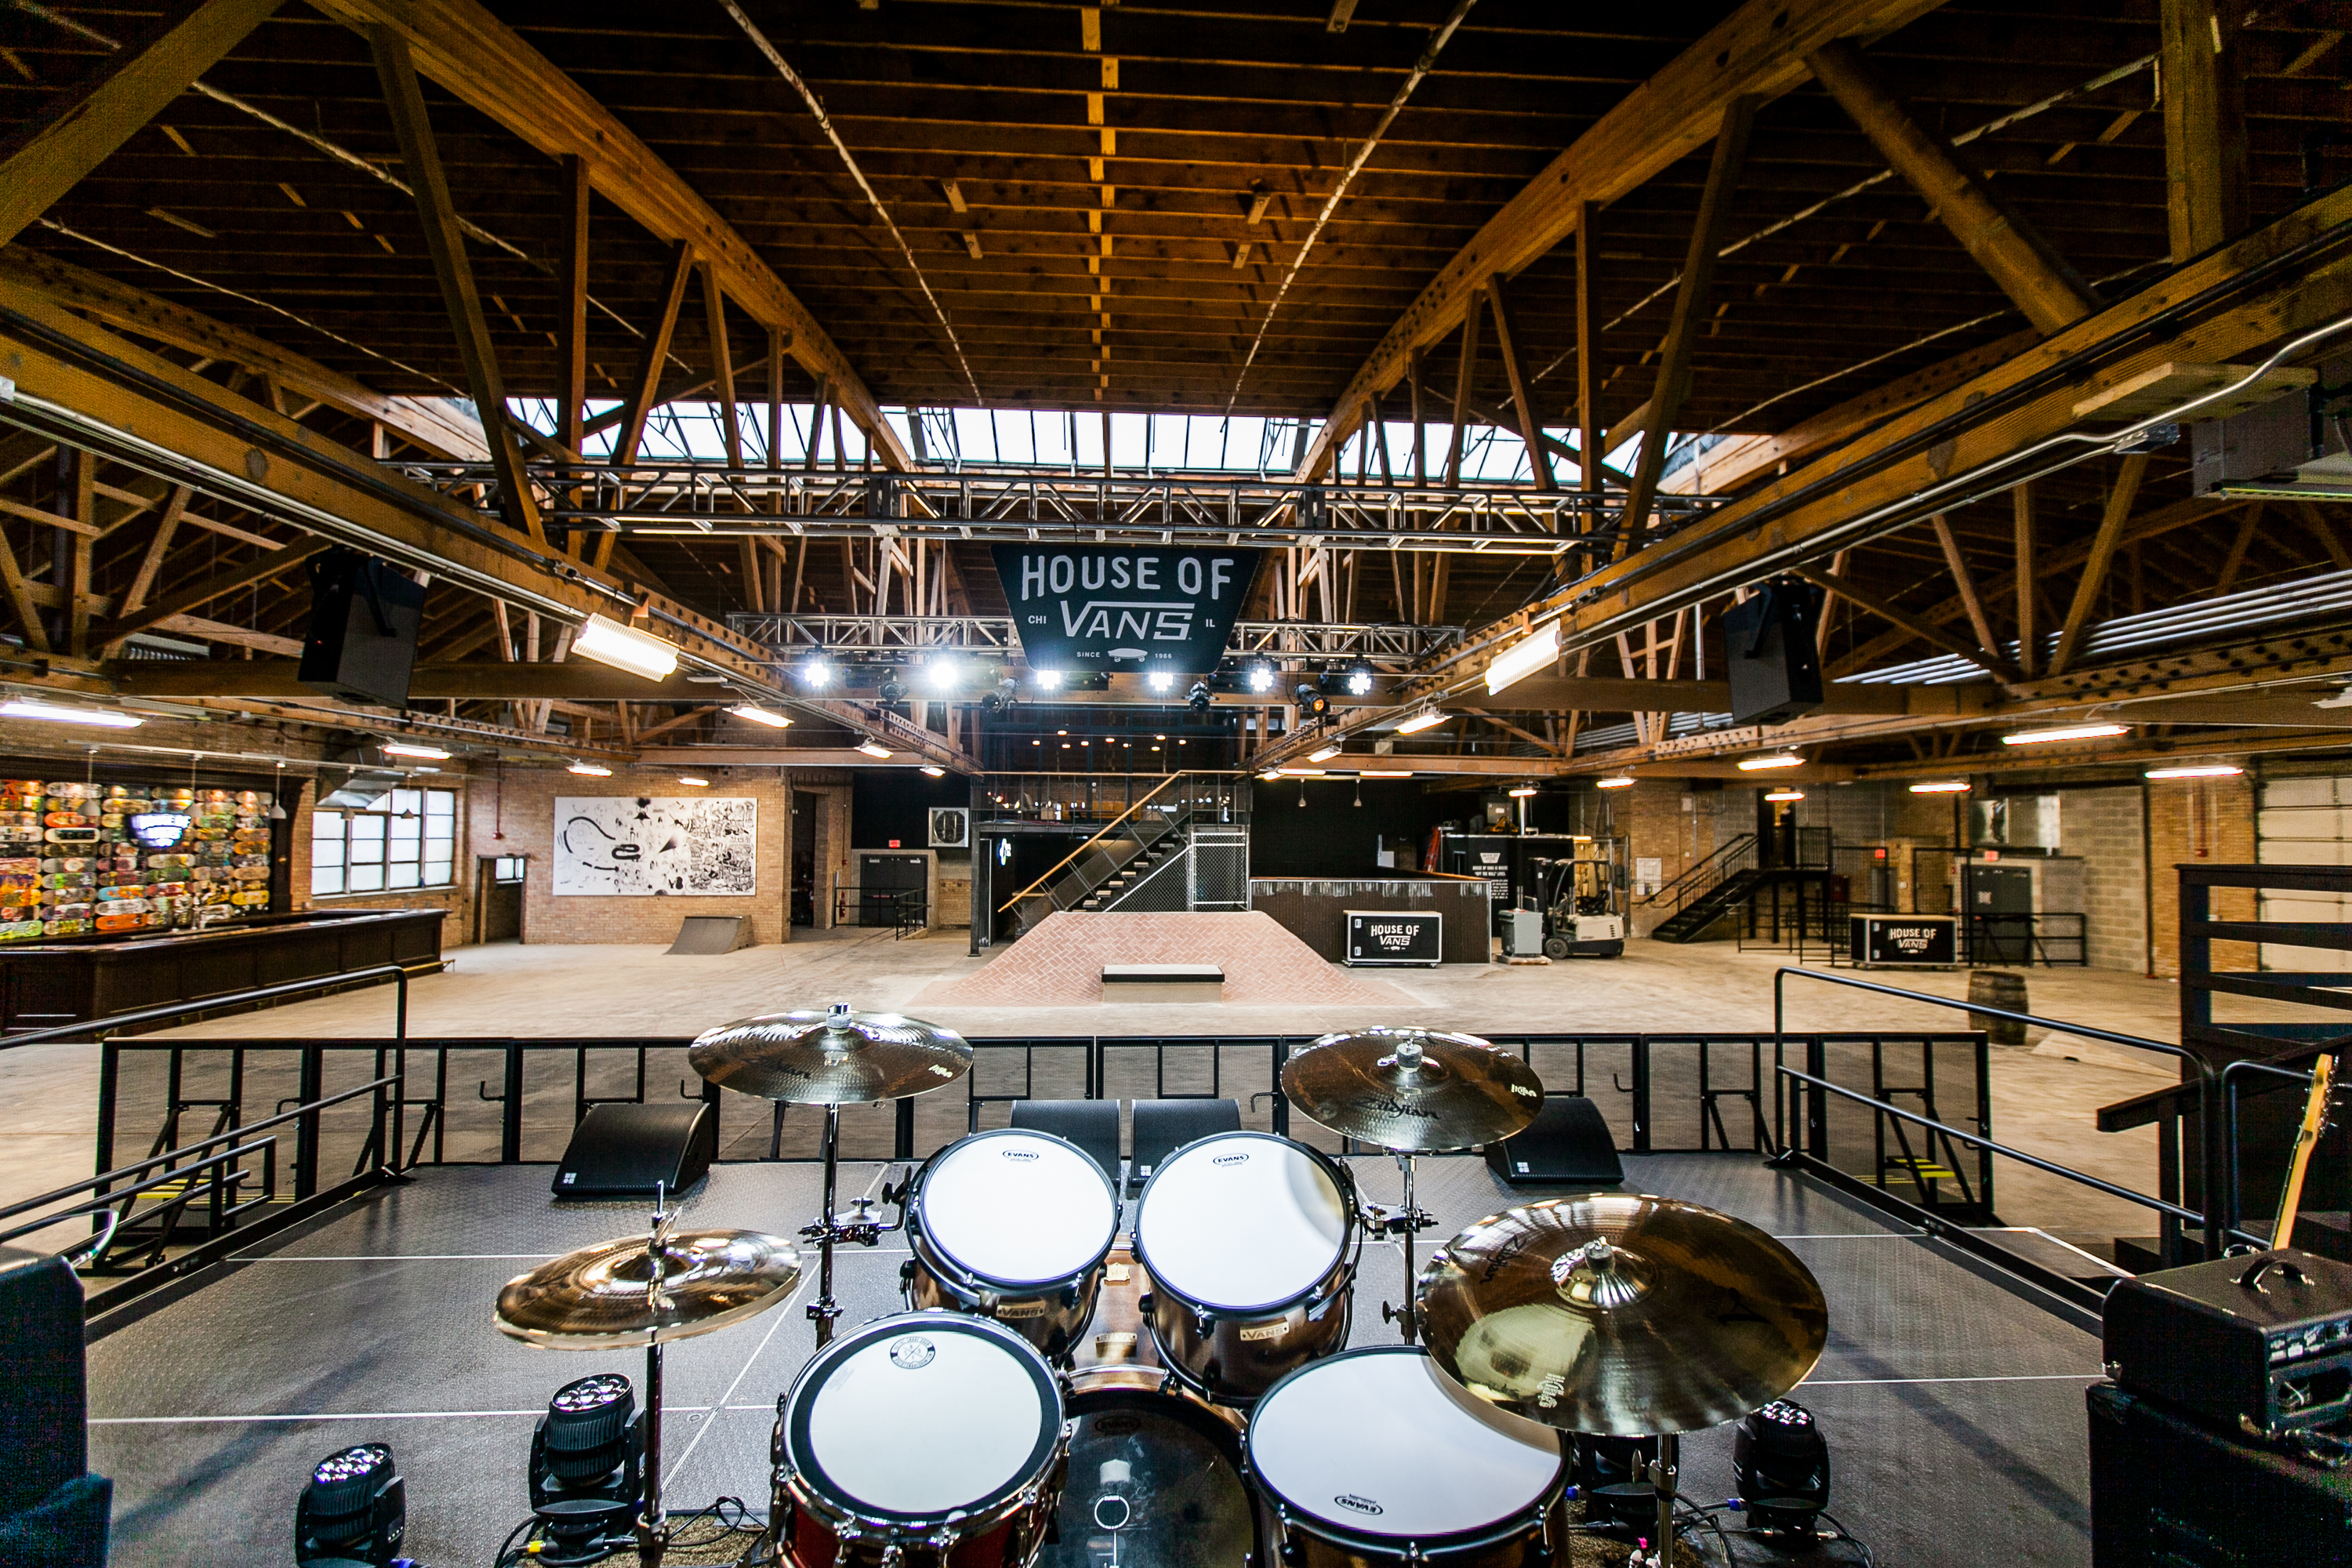 House of Vans announces its free summer concerts